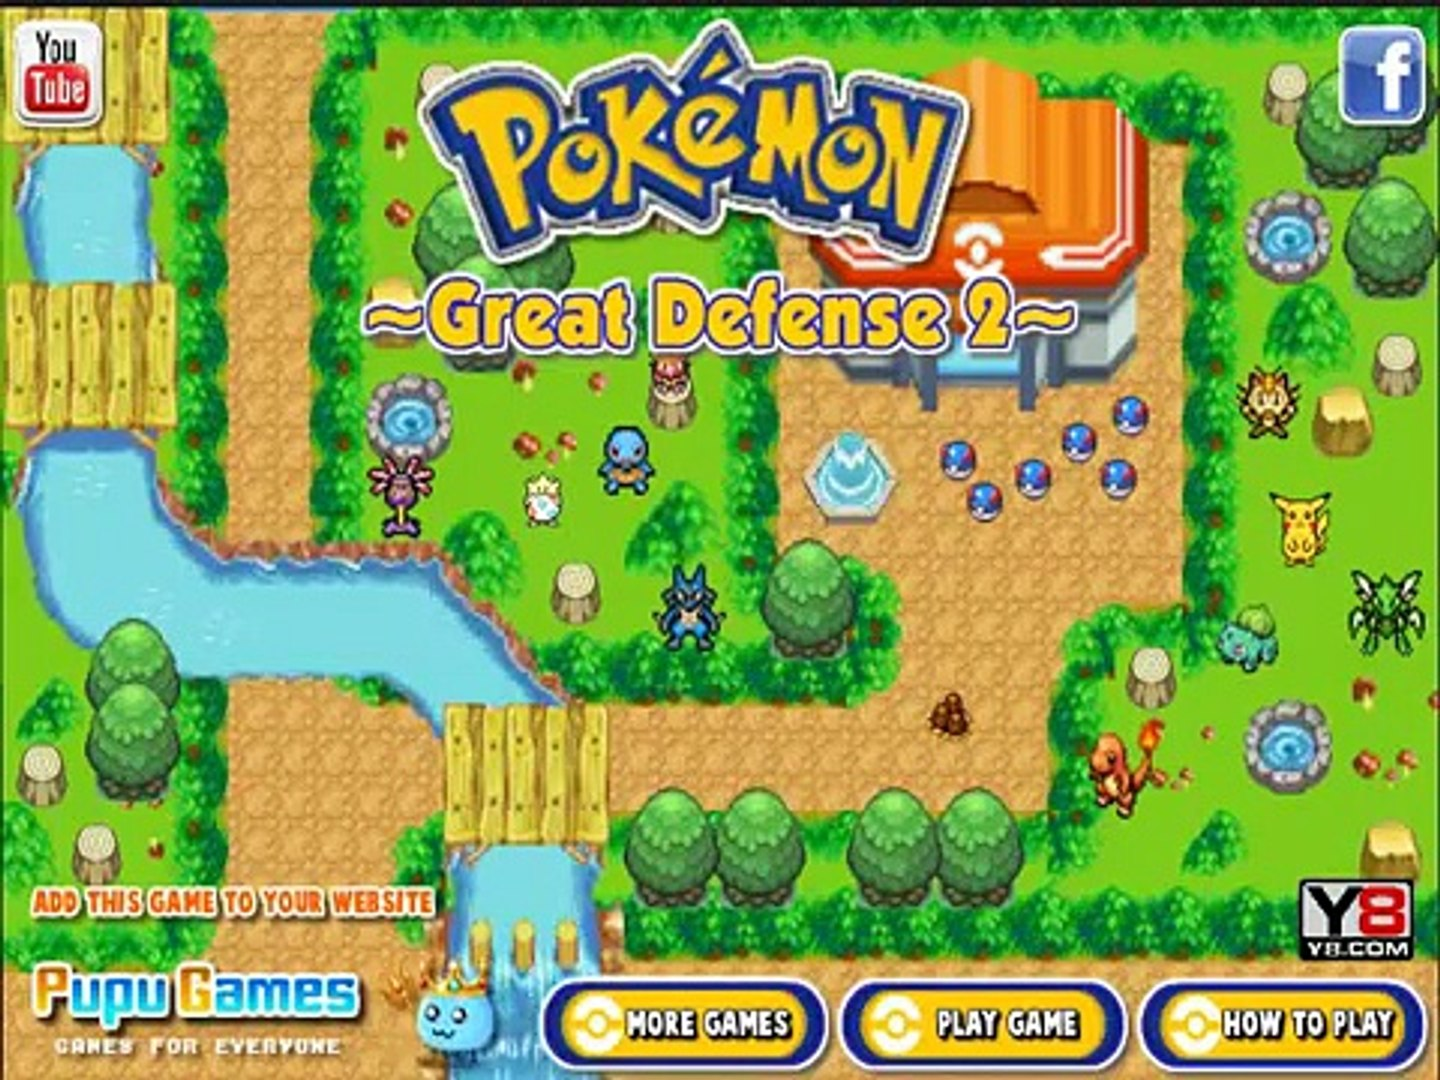 Pokemon great defense 2 game , nice game play for kids , best game for kids , super game for kids